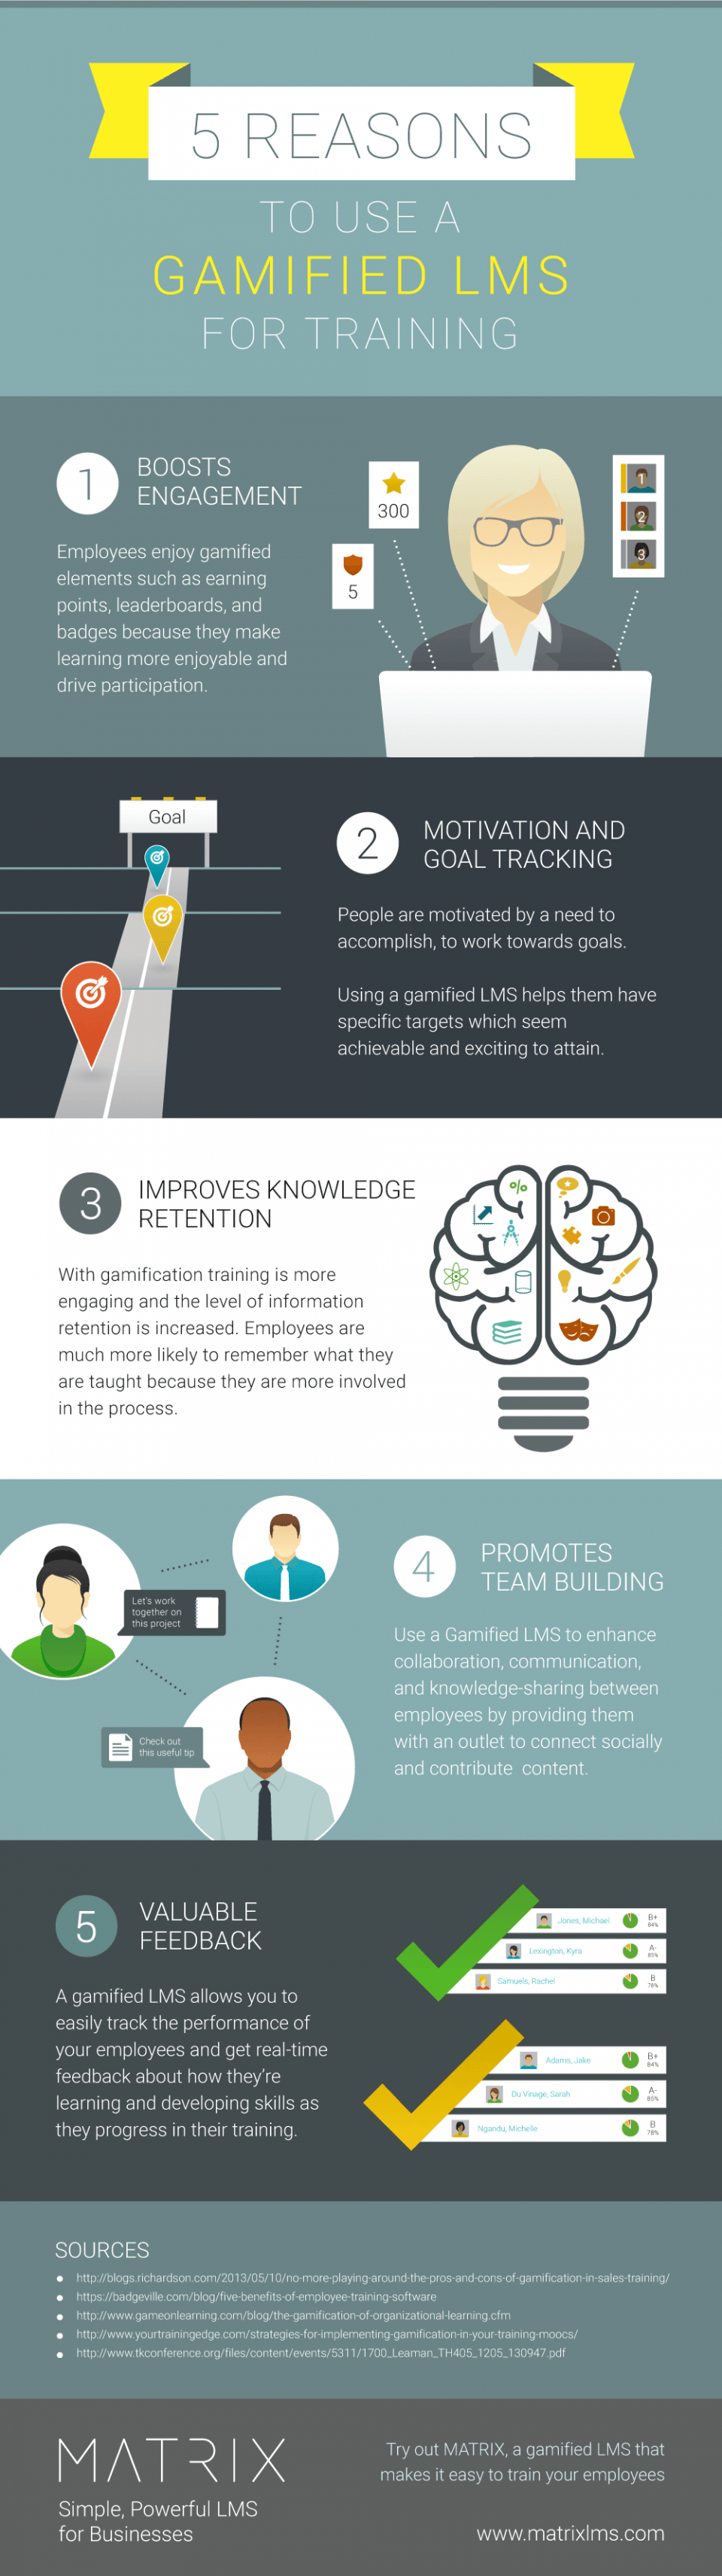 5 Reasons to Use a Gamified LMS for Training Infographic